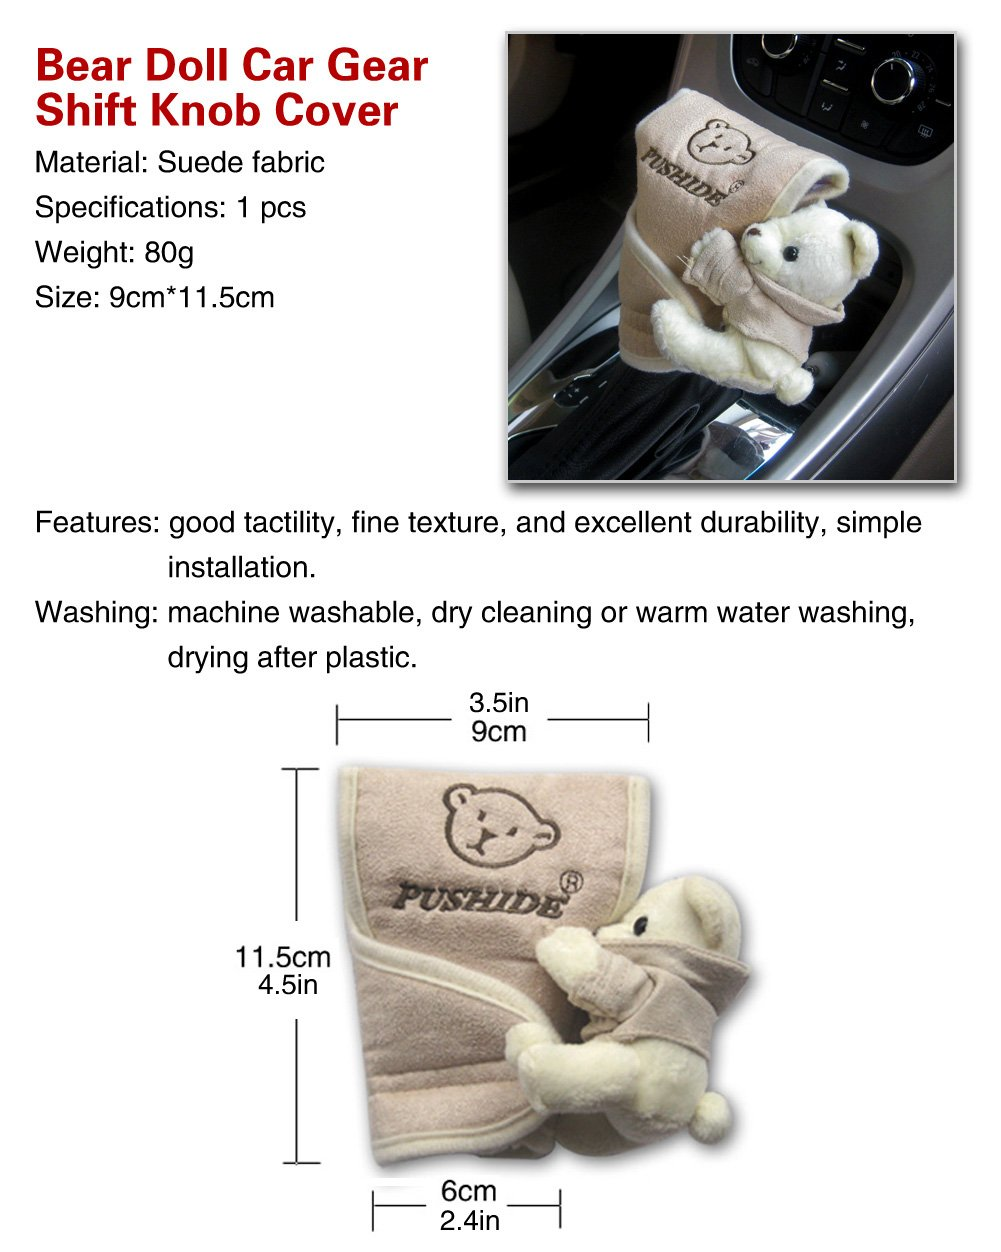 Suede - Brown Color Tianmei Cute Cartoon Bear Doll Styling Car Gear Shift Knob Cover Automobiles Accessories Ornaments